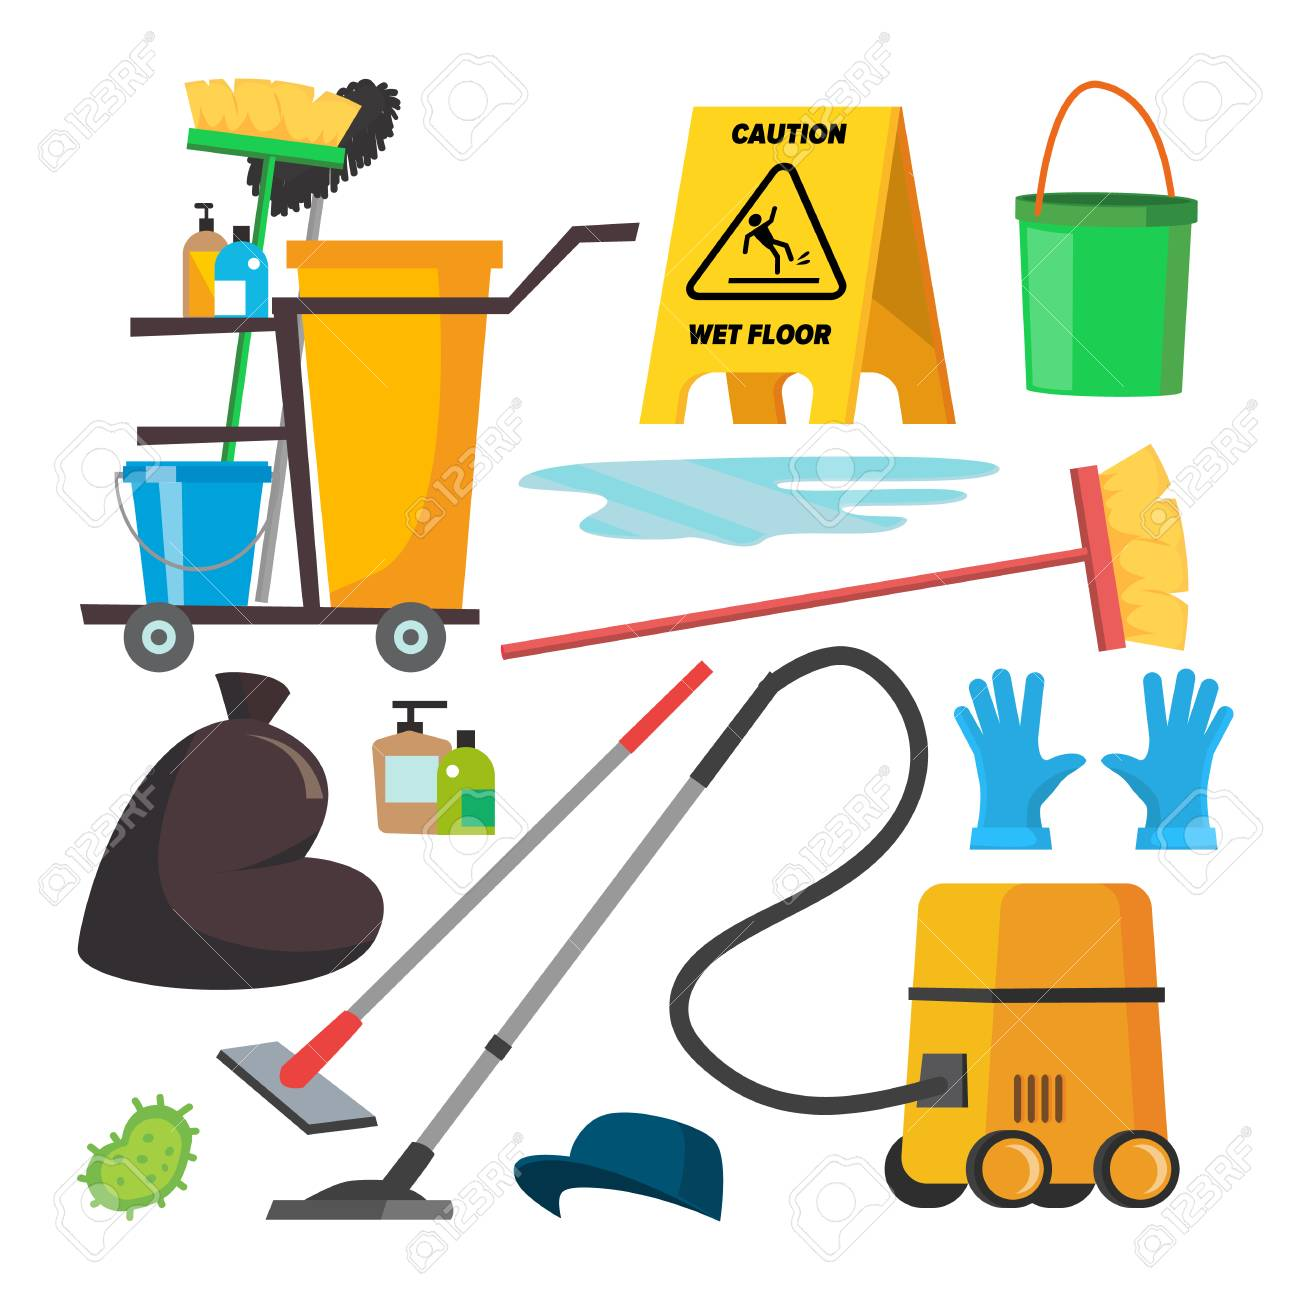 Cleaning Supplies Vector. Professional Commercial Cleaning Equipment Set. Cart, Vacuum Cleaner. Isolated Illustration. - 91390613